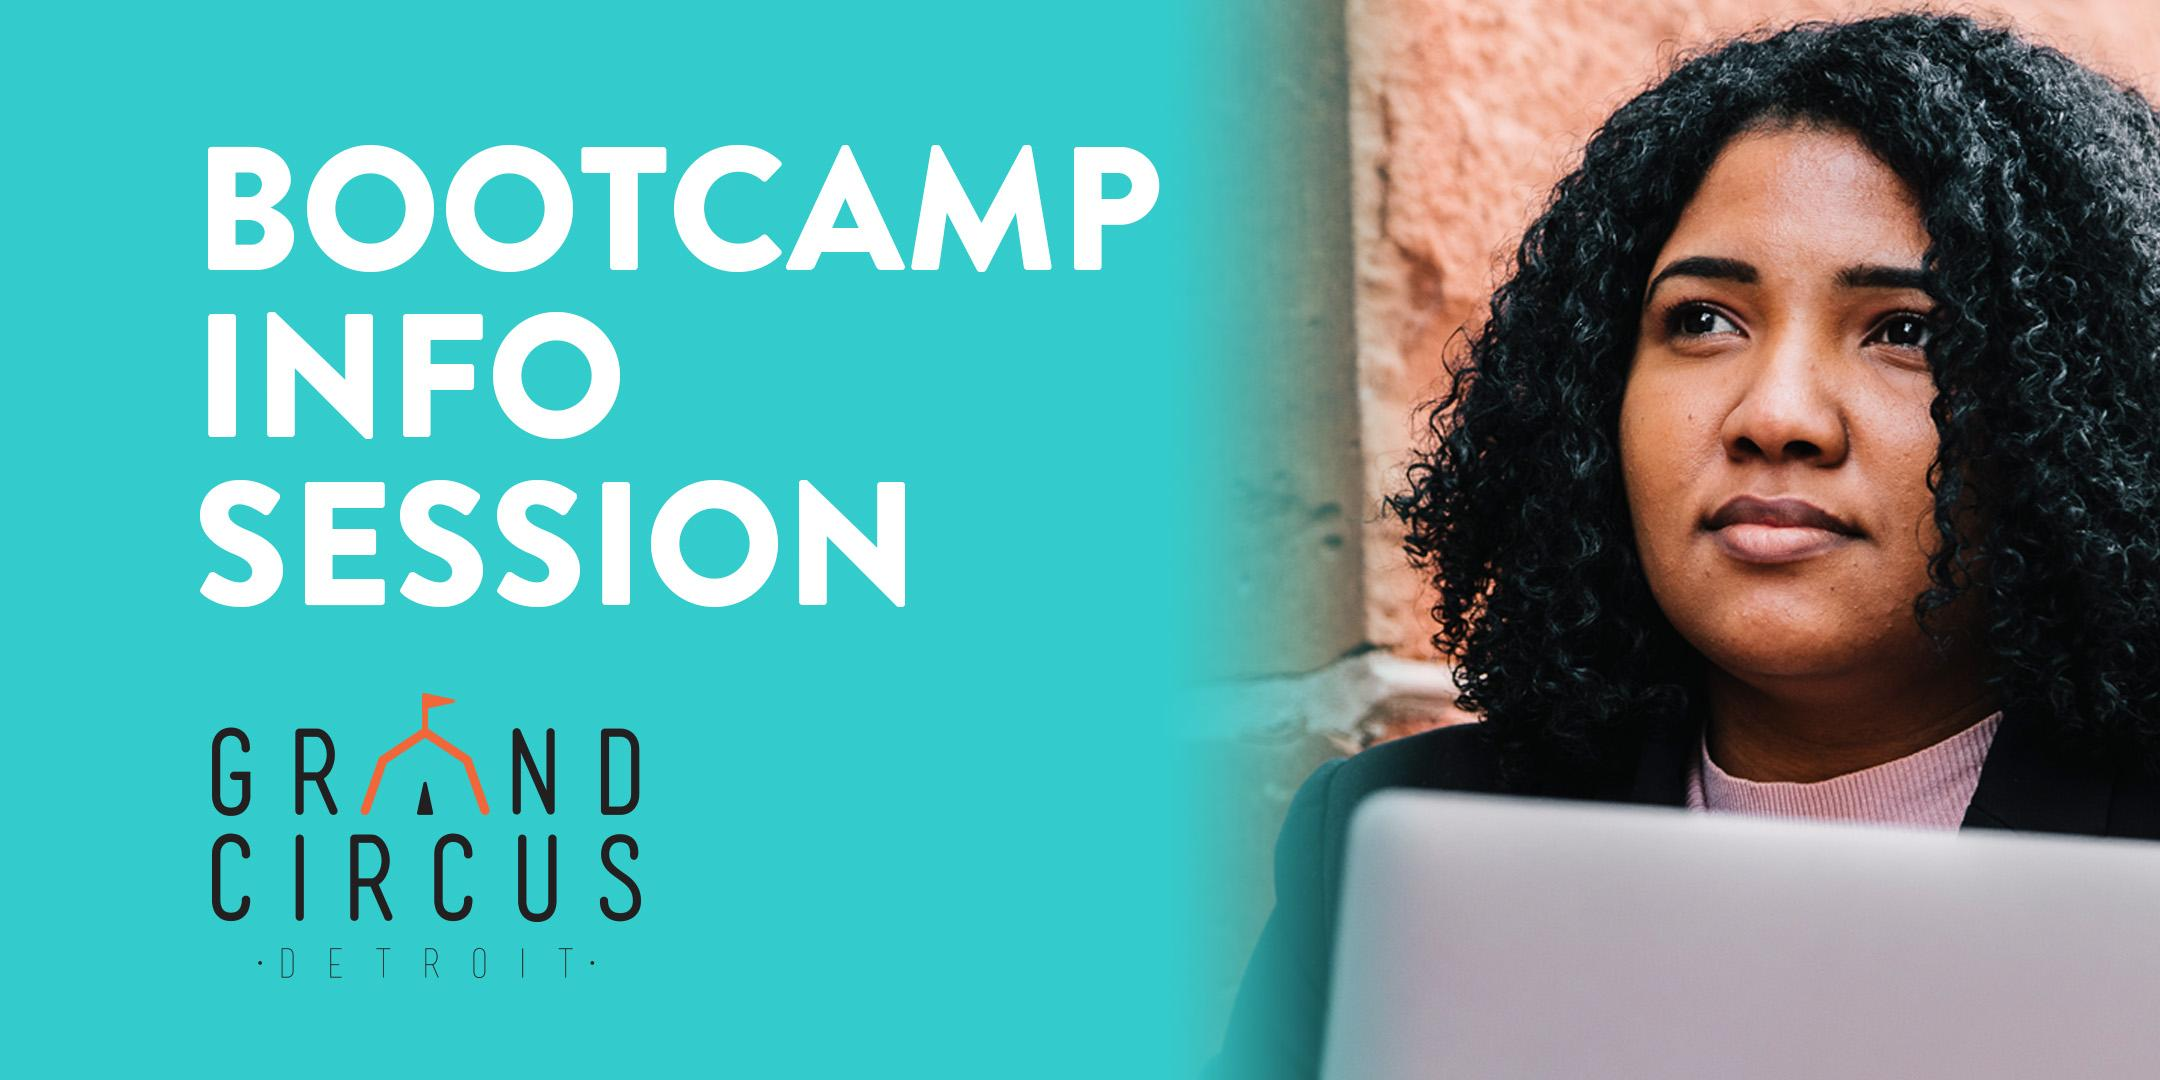 Grand Circus Bootcamp Info Session